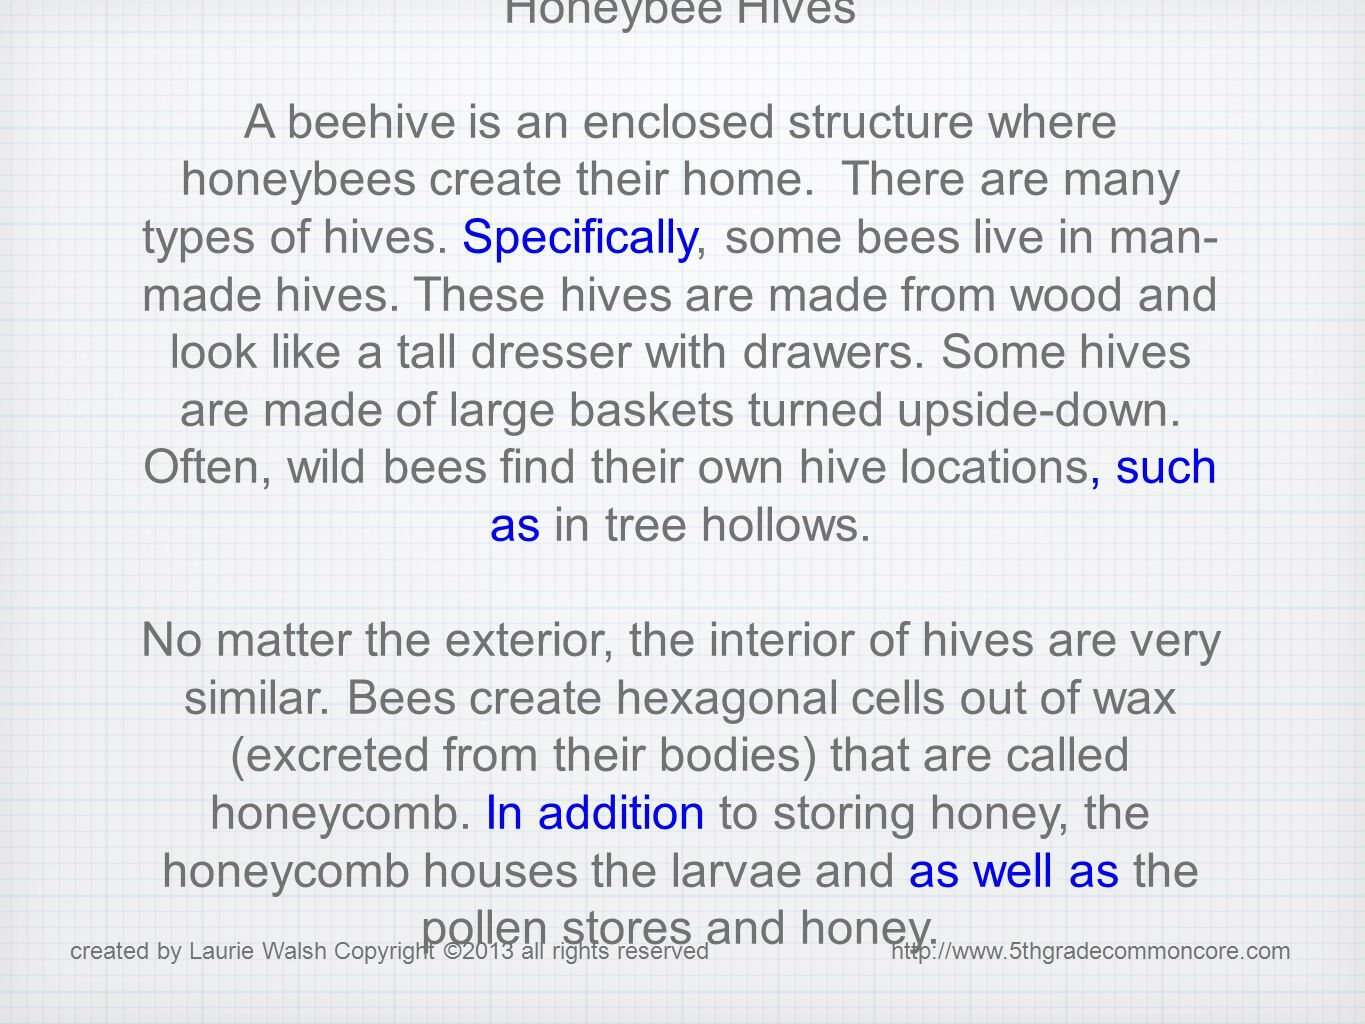 Honeybee Hives A beehive is an enclosed structure where honeybees create their home.